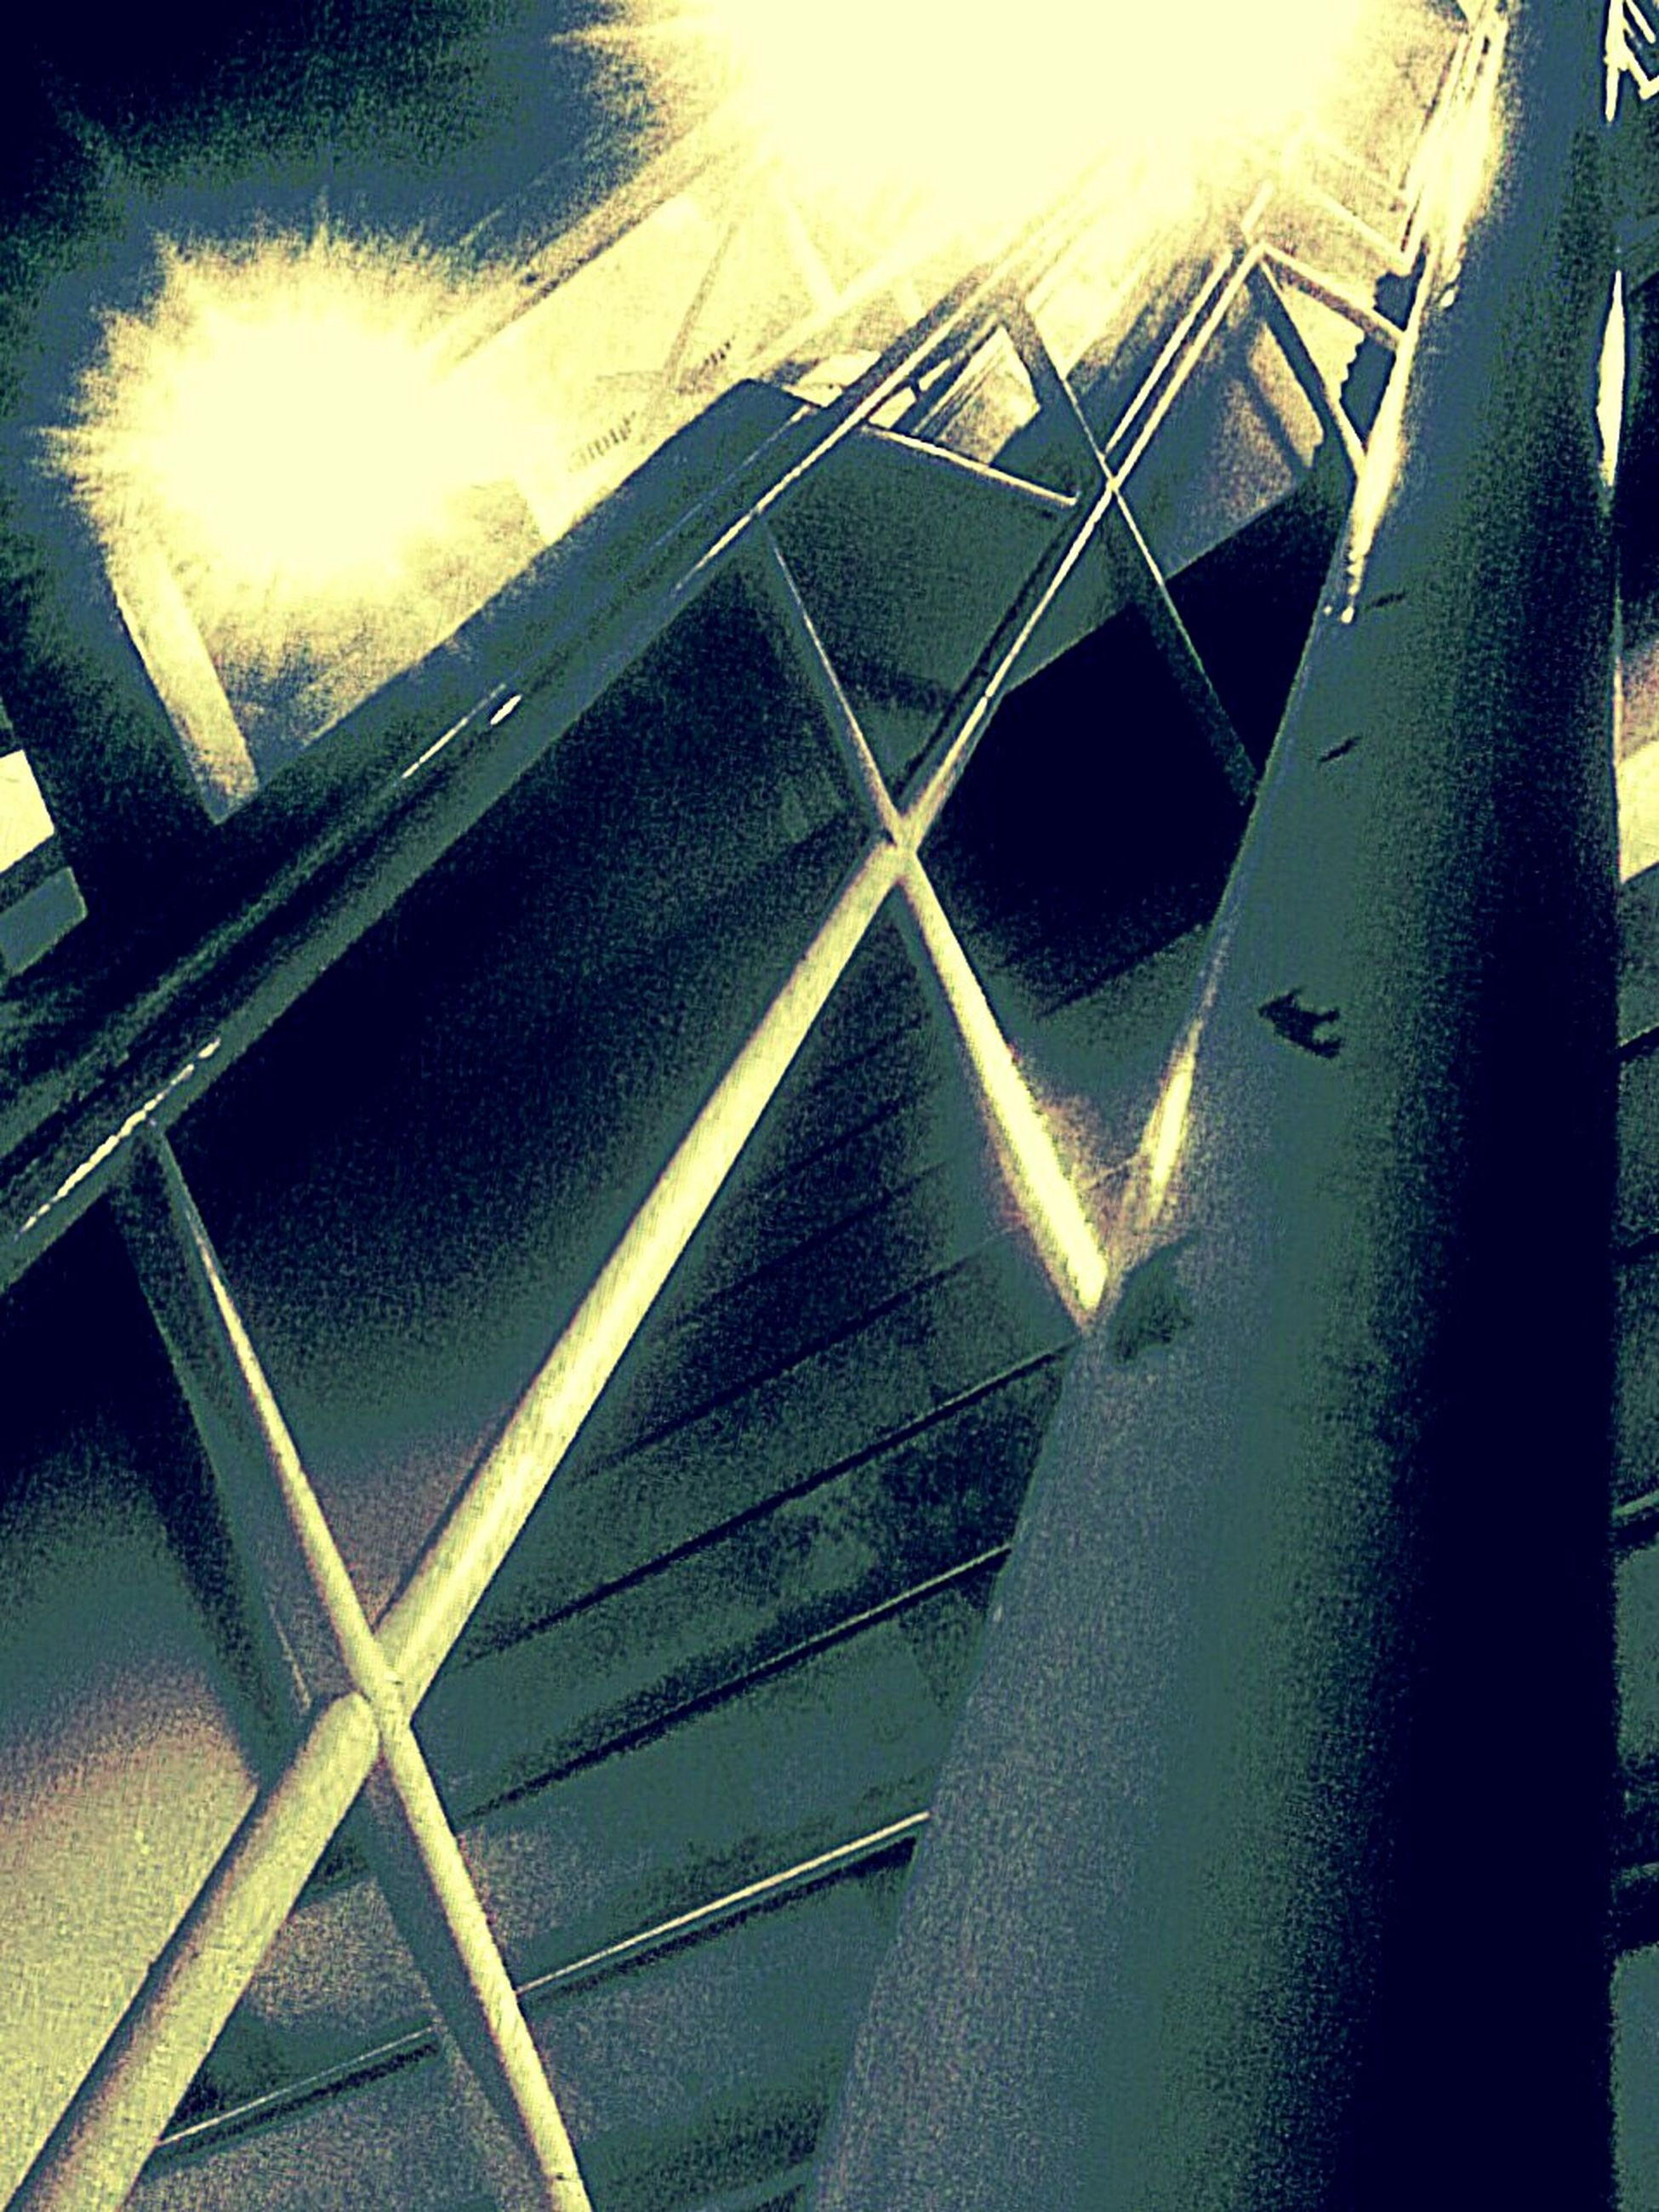 low angle view, sun, sunlight, lens flare, sunbeam, built structure, railing, metal, pattern, sky, architecture, no people, sunny, outdoors, bridge - man made structure, close-up, staircase, steps, shadow, day